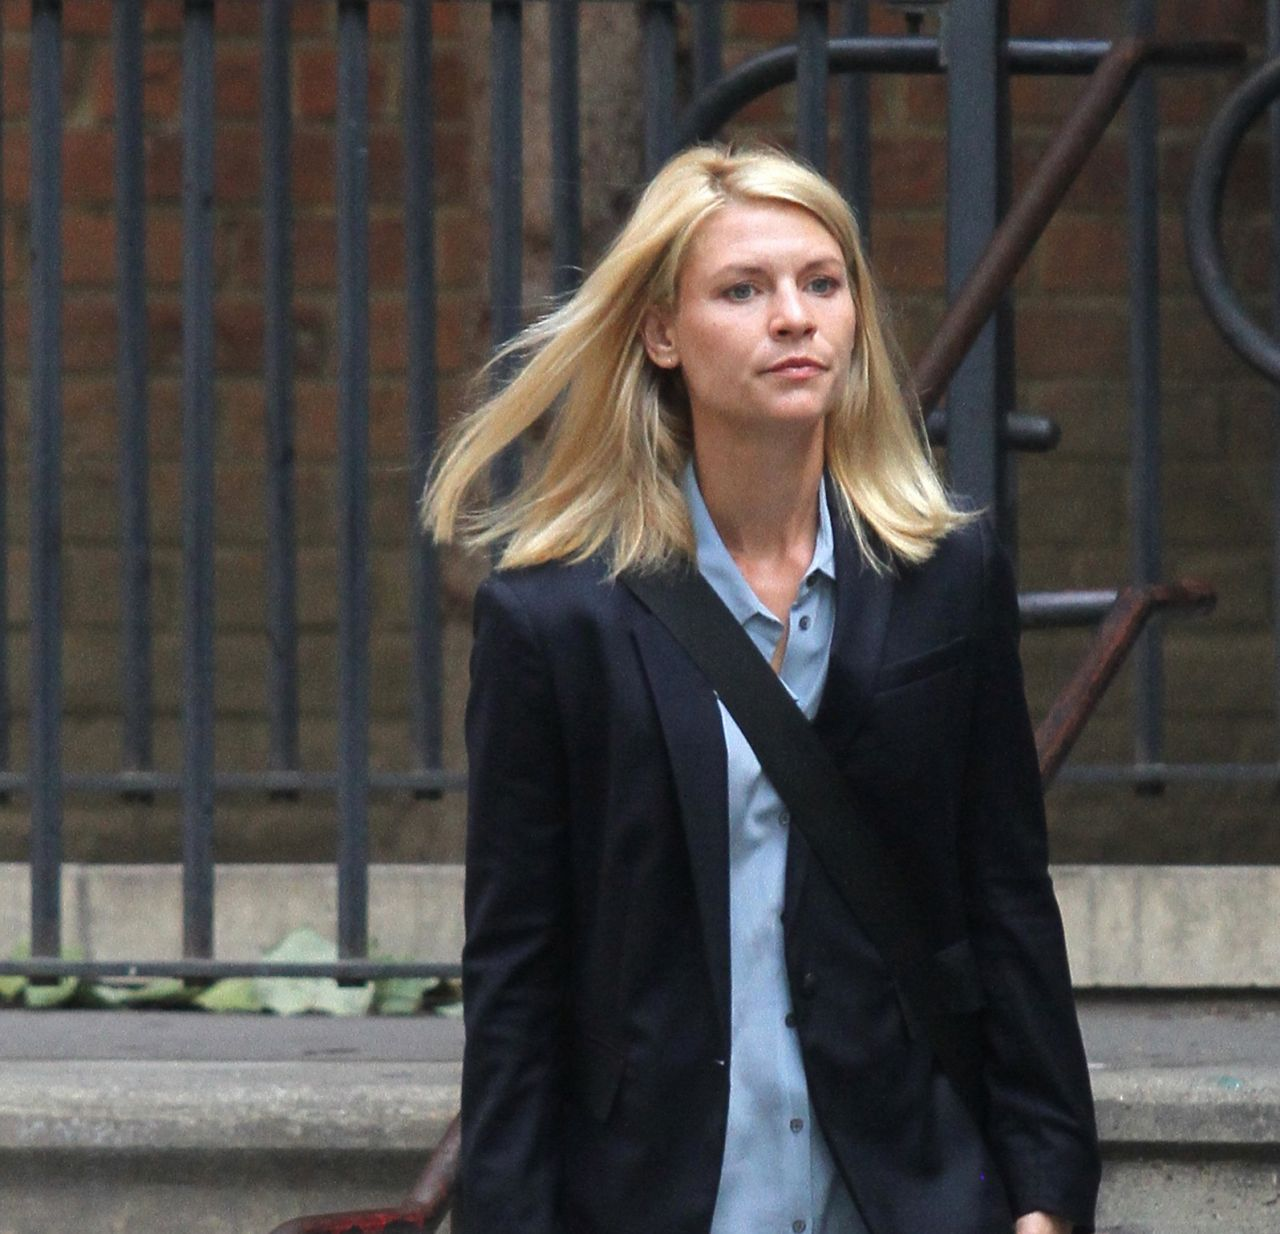 Claire Danes -'Homeland' Set in NYC, August 2016 Claire Danes Homeland